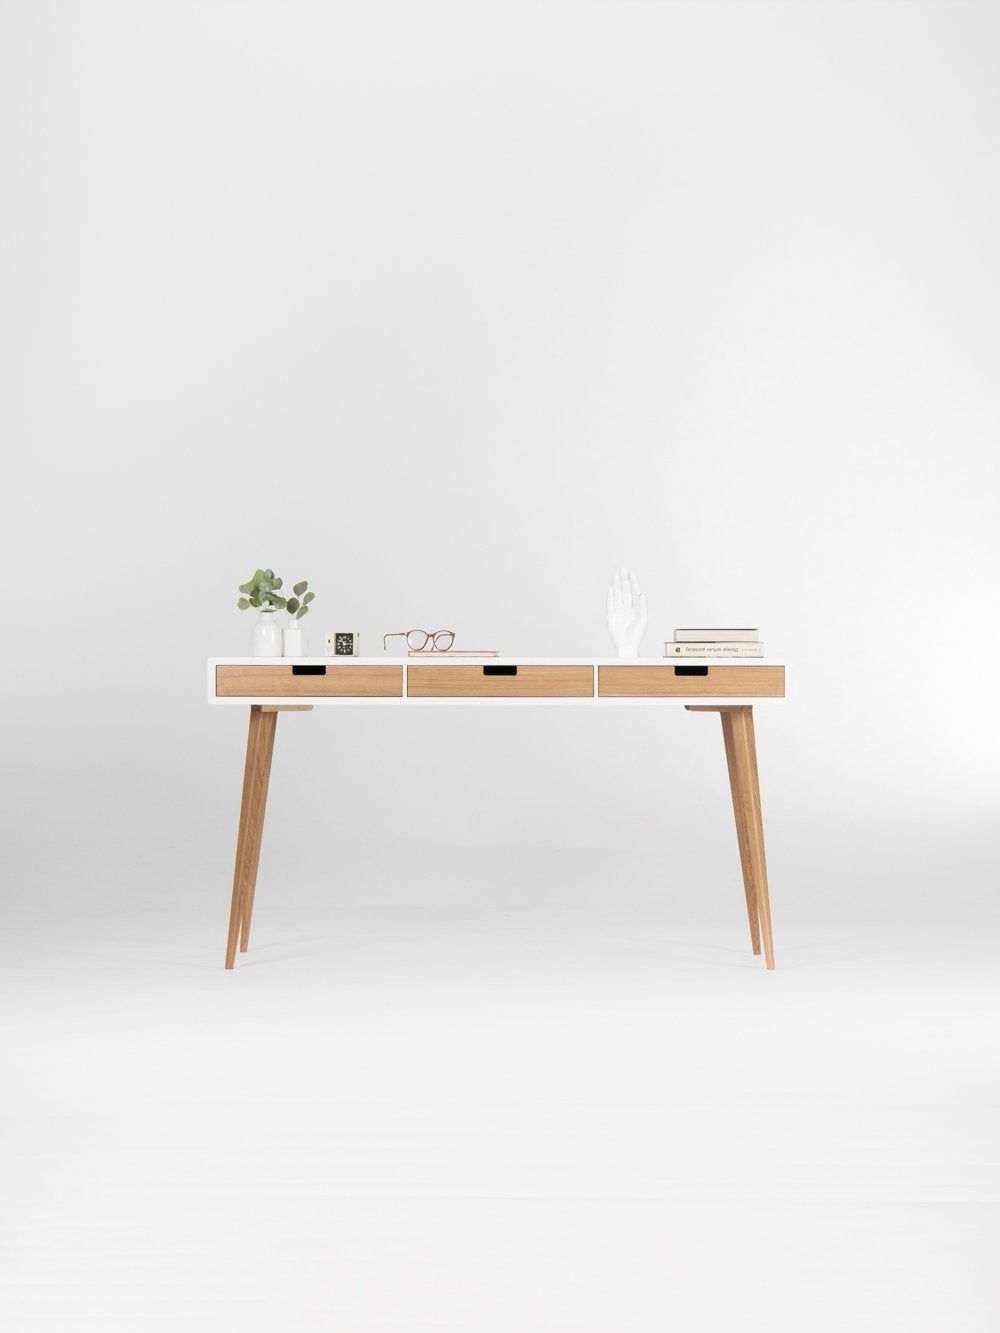 White Wooden Desk With Solid Oak Drawers Mid Century Modern In 2020 White Wooden Desk Solid Oak Wooden Desk